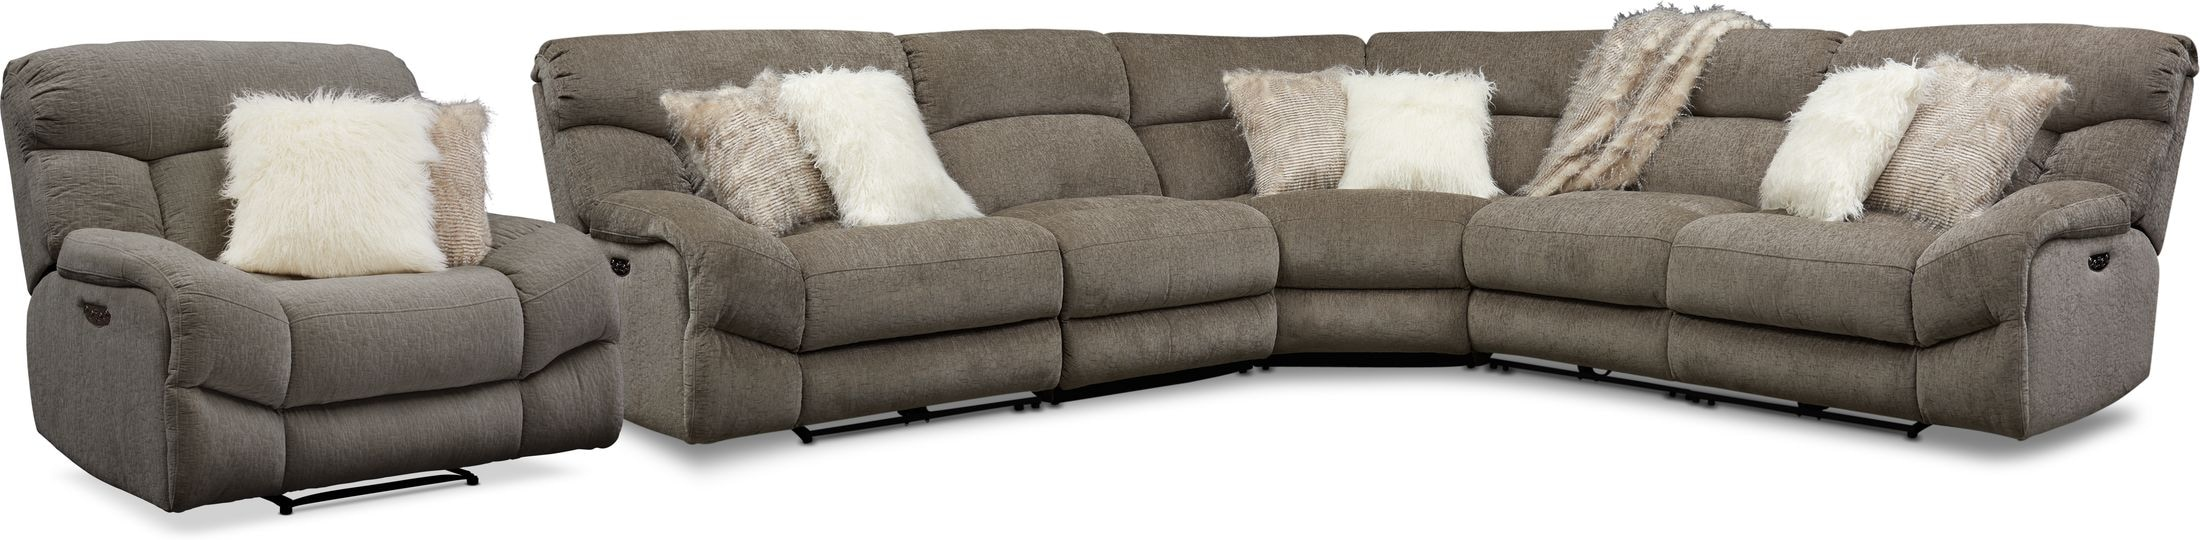 Living Room Furniture - Wave 5-Piece Dual-Power Reclining Sectional with 2 Reclining Seats and Recliner